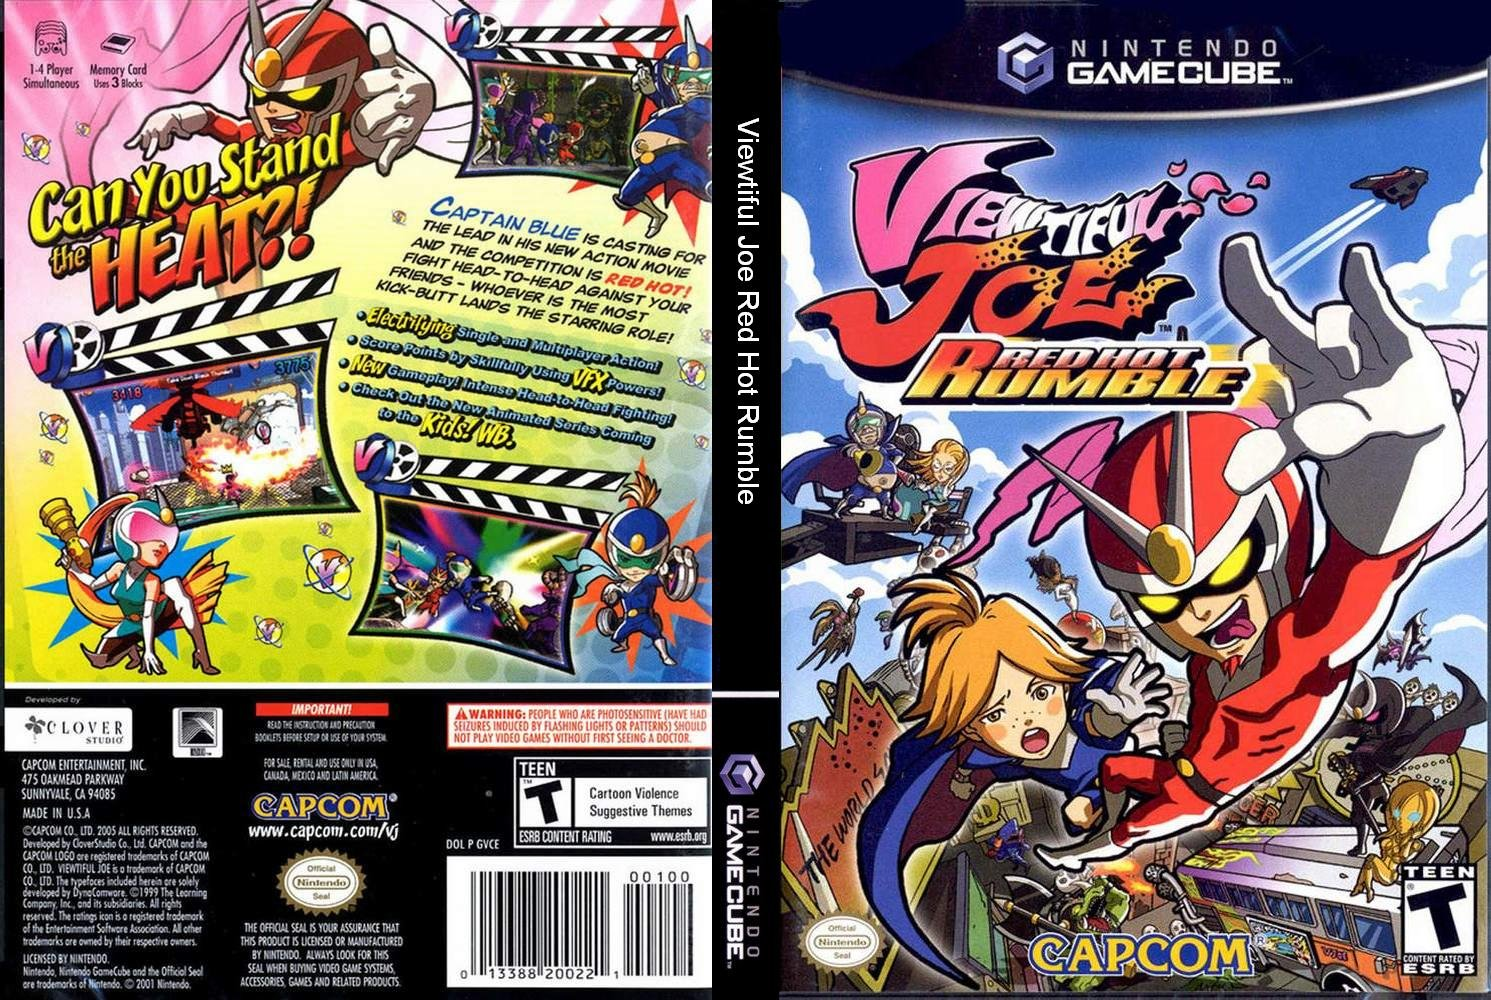 Viewtiful Joe Red Hot Rumble ISO